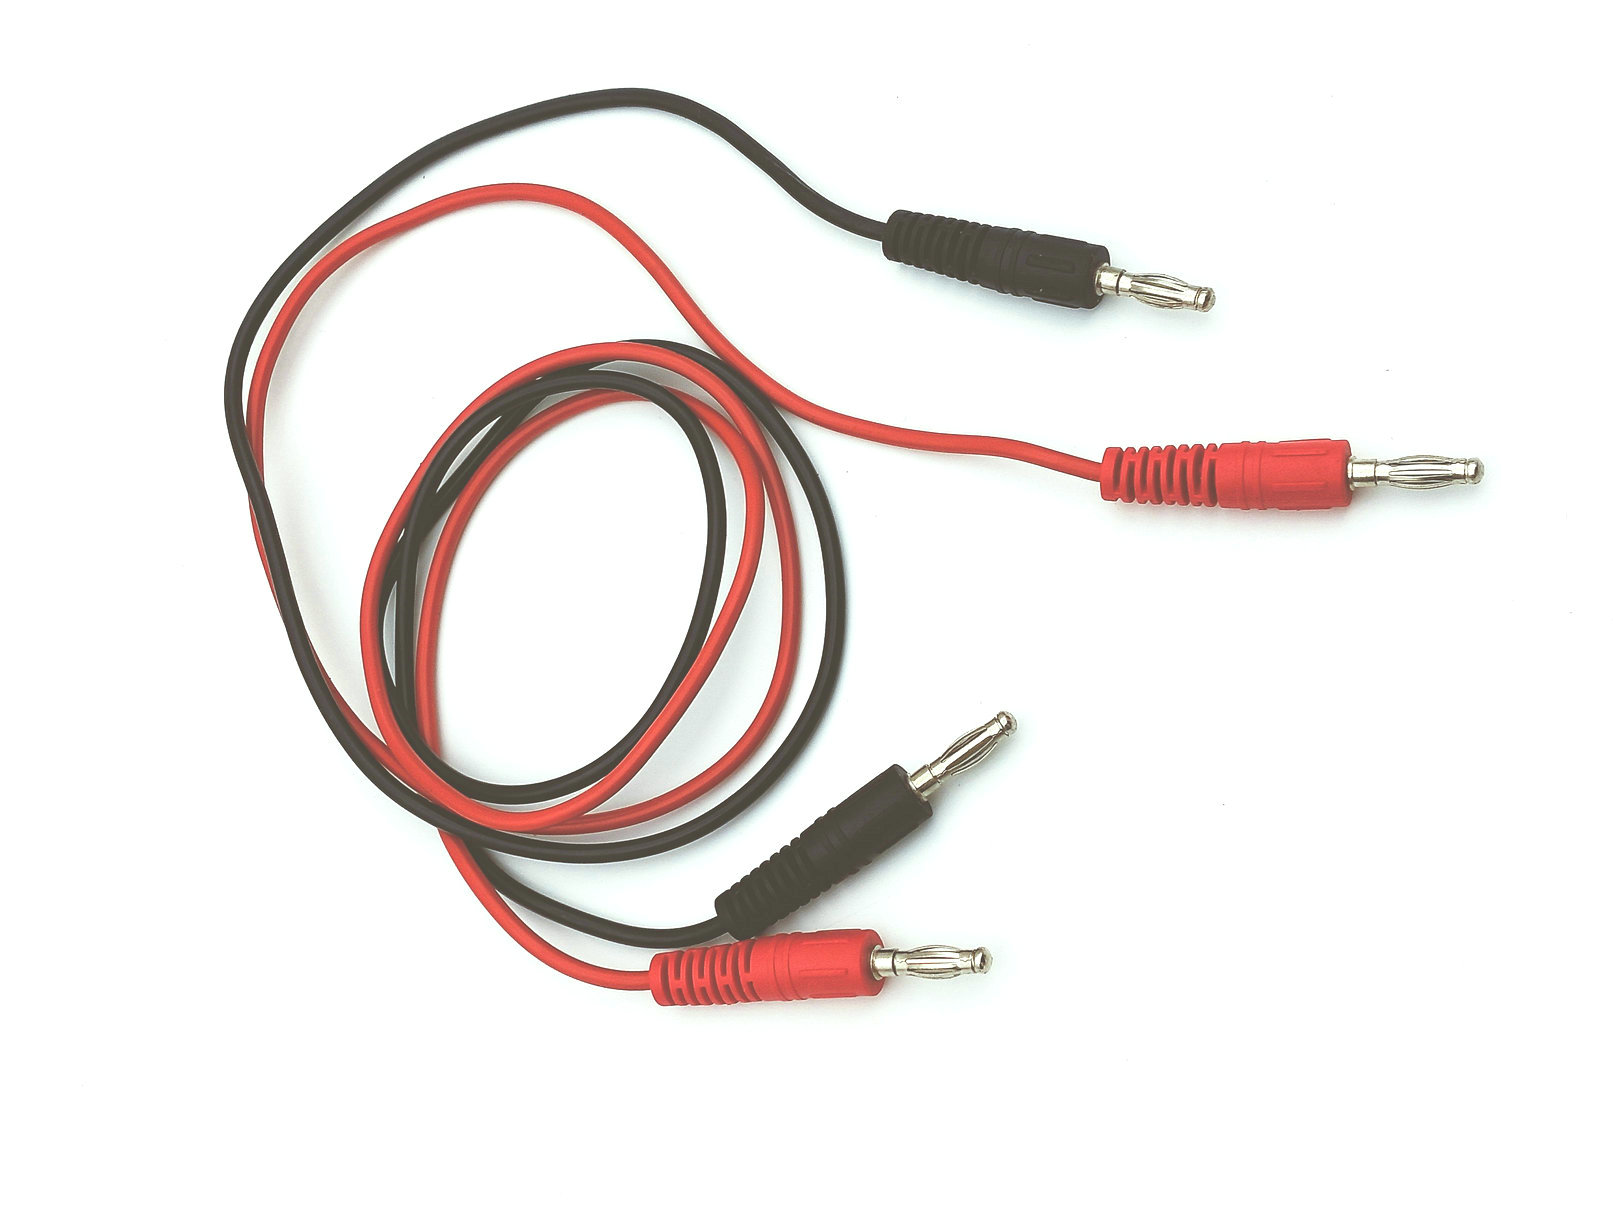 1pc Stackable Copper Banana to Banana Plug Test Leads 15A Safe Cable Set